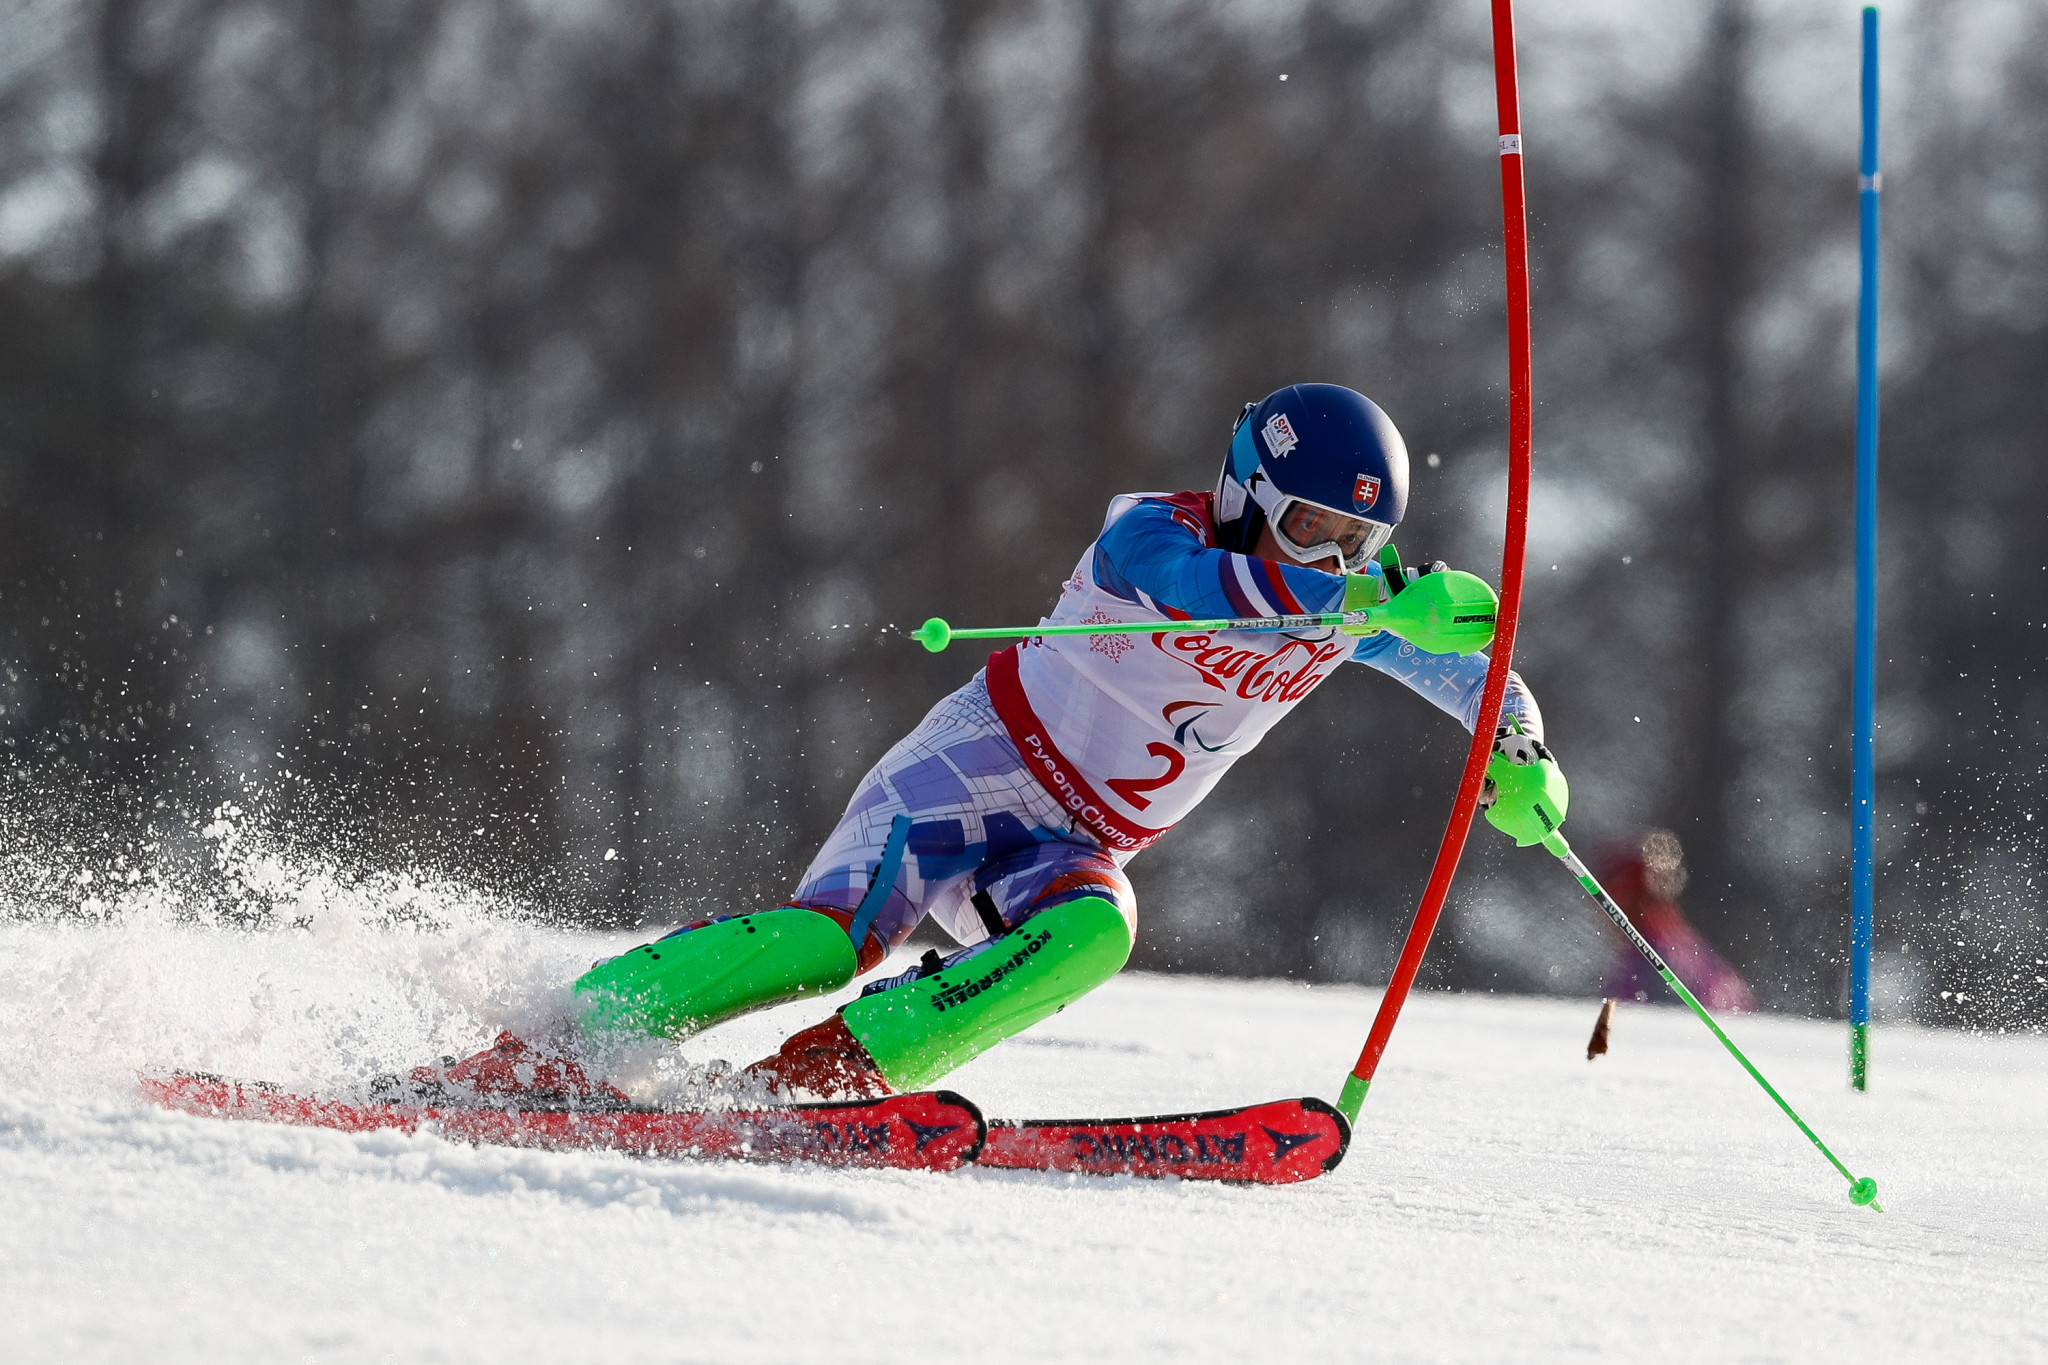 Slovakia's Haraus caps off World Para Alpine Skiing World Cup season with victory